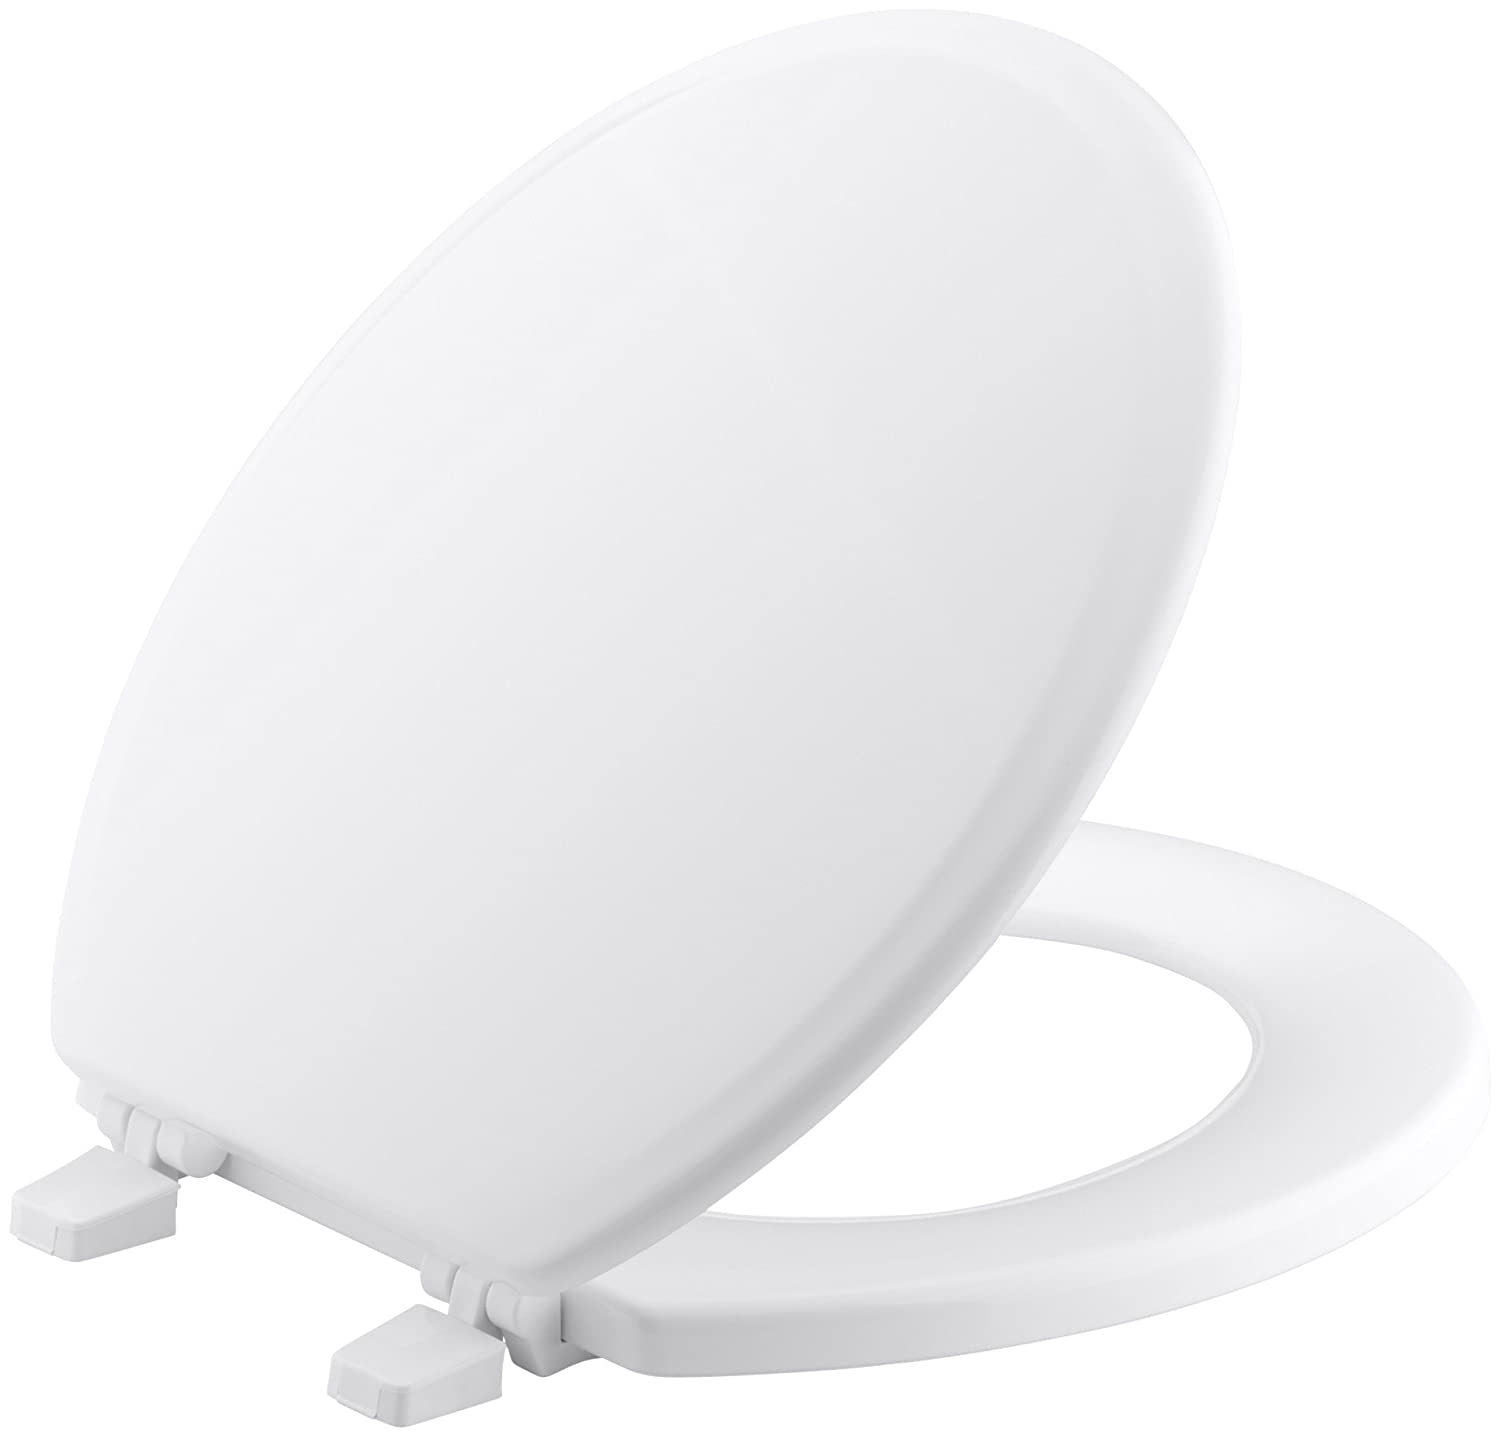 Surprising The Best Toilet Seat Top 4 Reviewed In 2019 The Smart Pdpeps Interior Chair Design Pdpepsorg